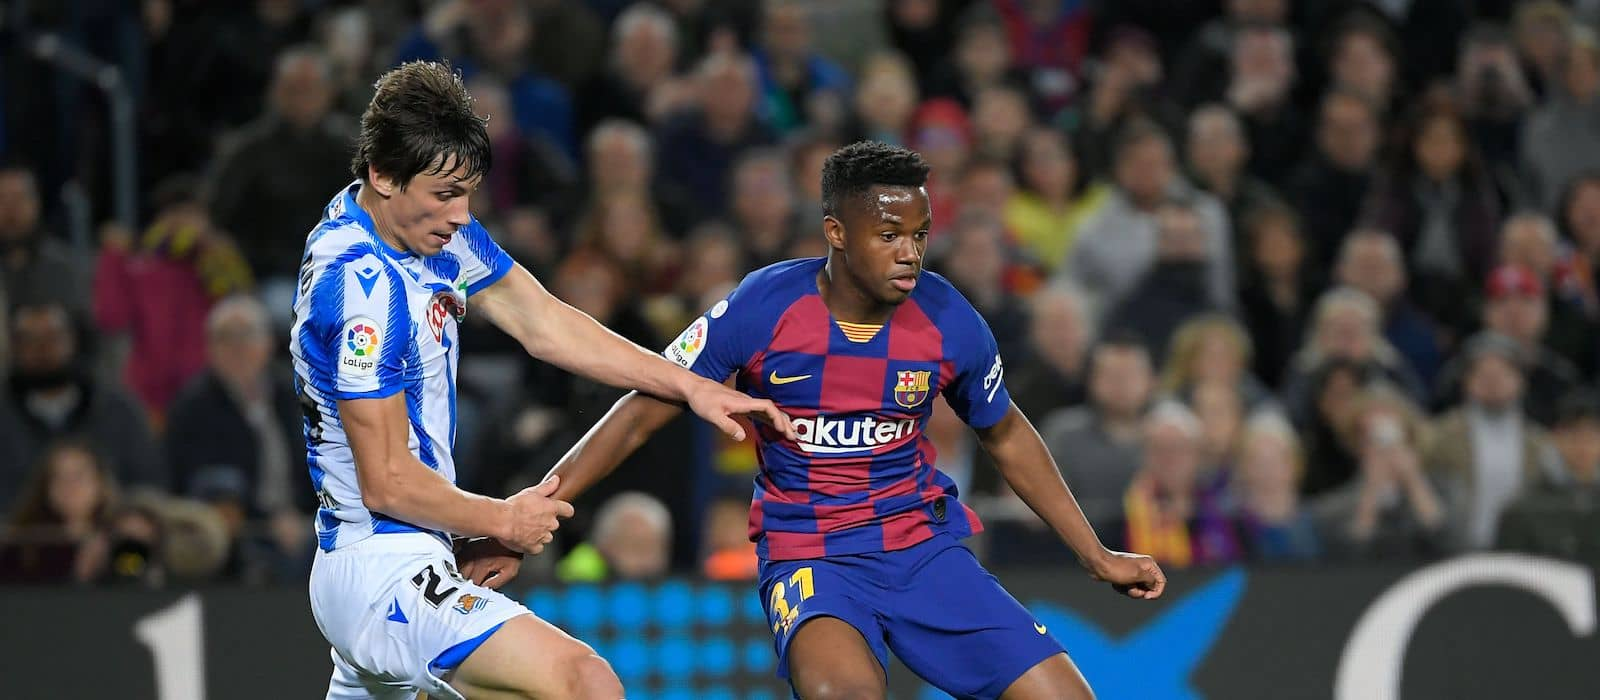 Manchester United rejected by Barcelona in bids to sign Ansu Fati